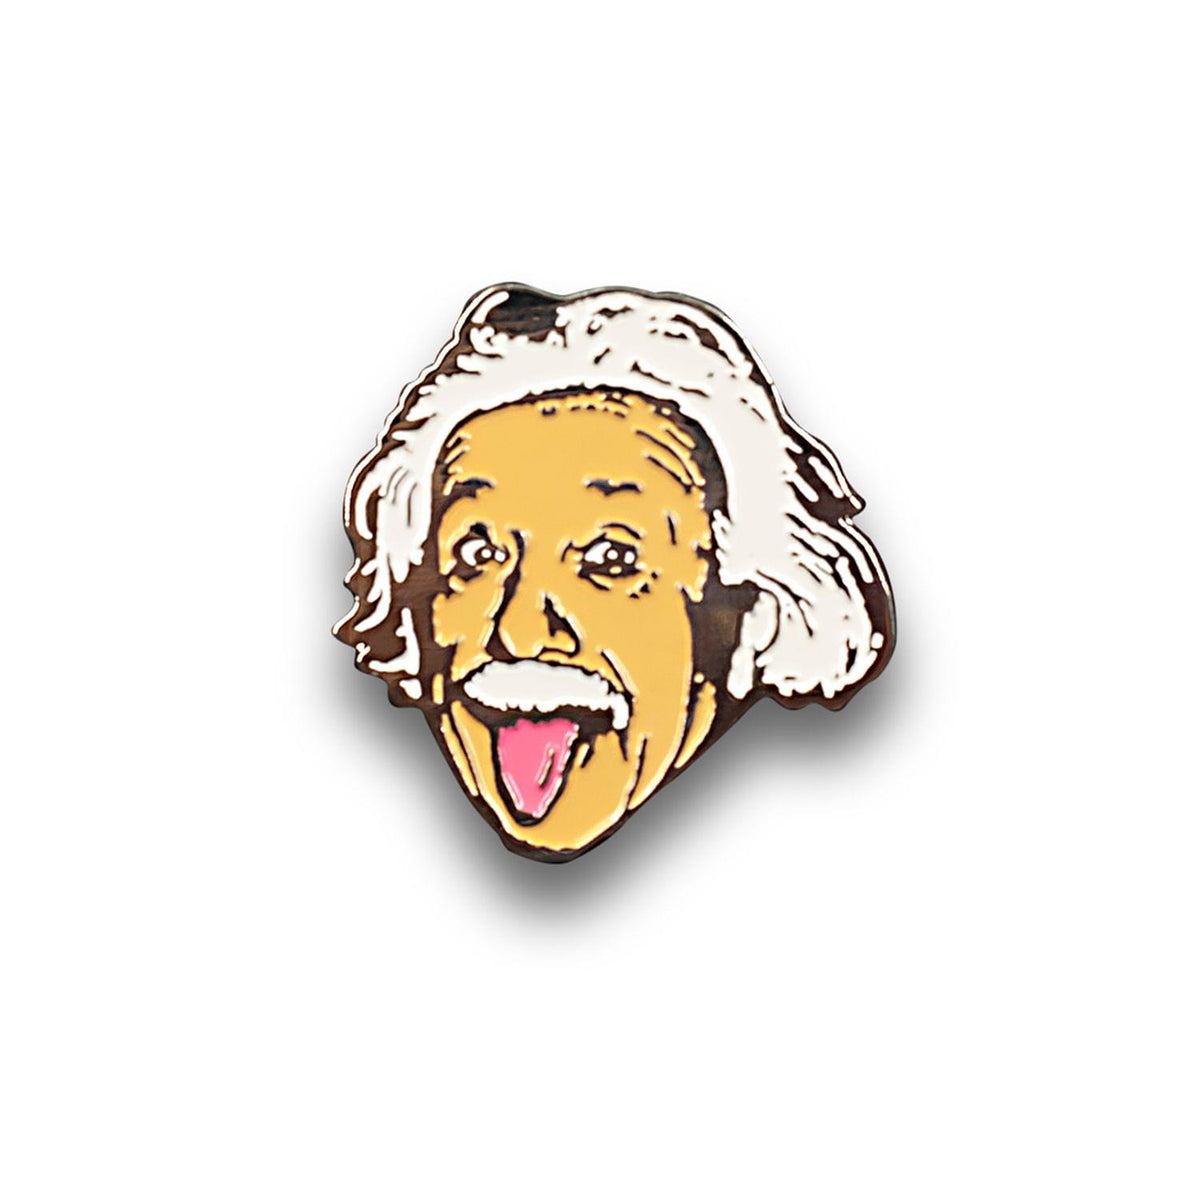 Albert Einstein Tongue Out Enamel Pin | Official Einstein Collectible Poster Pin